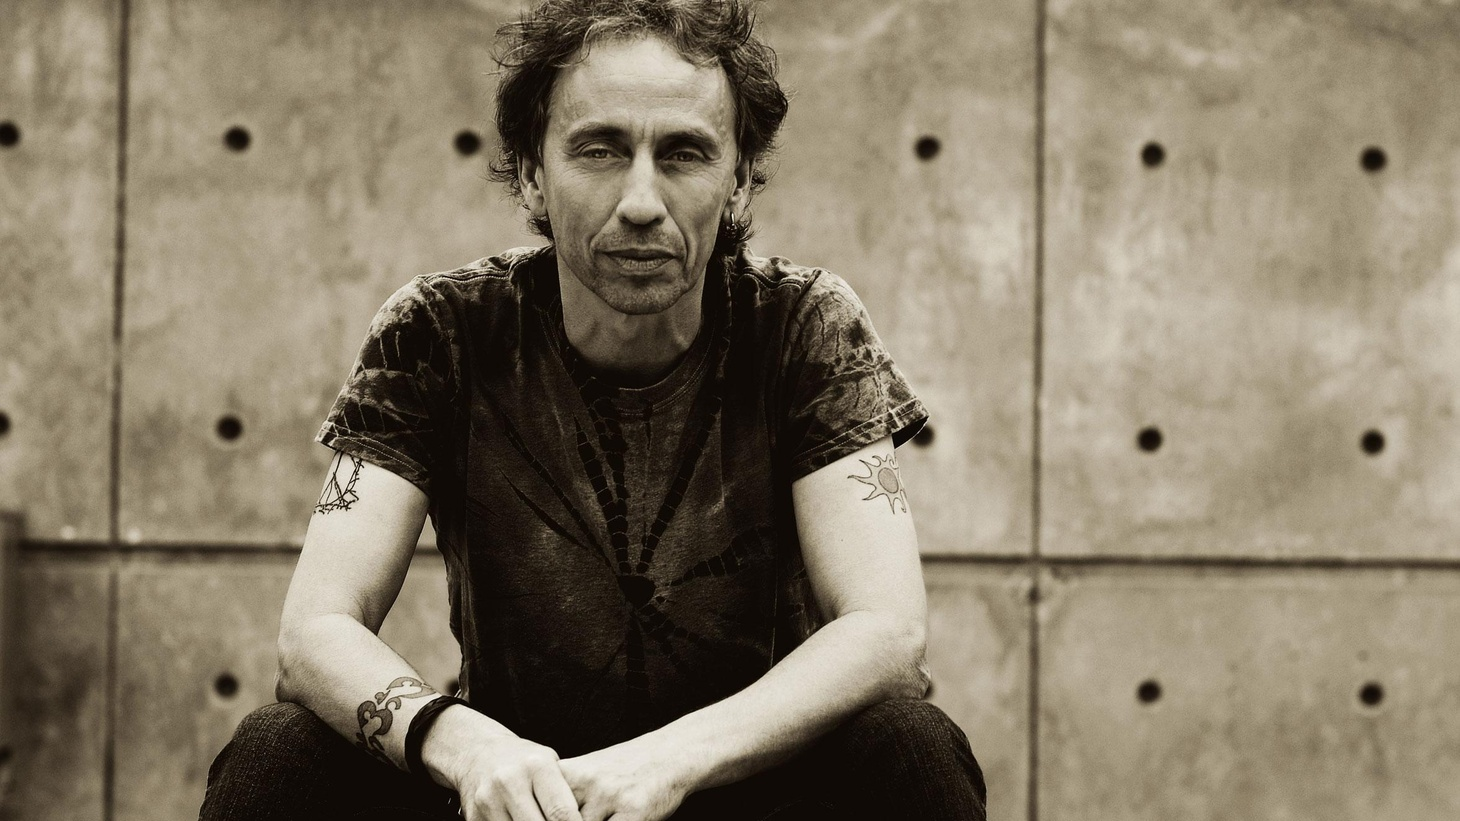 On this edition of Sounds Eclectic, host Nic Harcourt plays new, upcoming and recent releases from Guided By Voices, Lucinda Williams, and the latest from Radiohead. Plus a live in-studio performance from PJ Harvey, all this and much more on Sounds Eclectic.